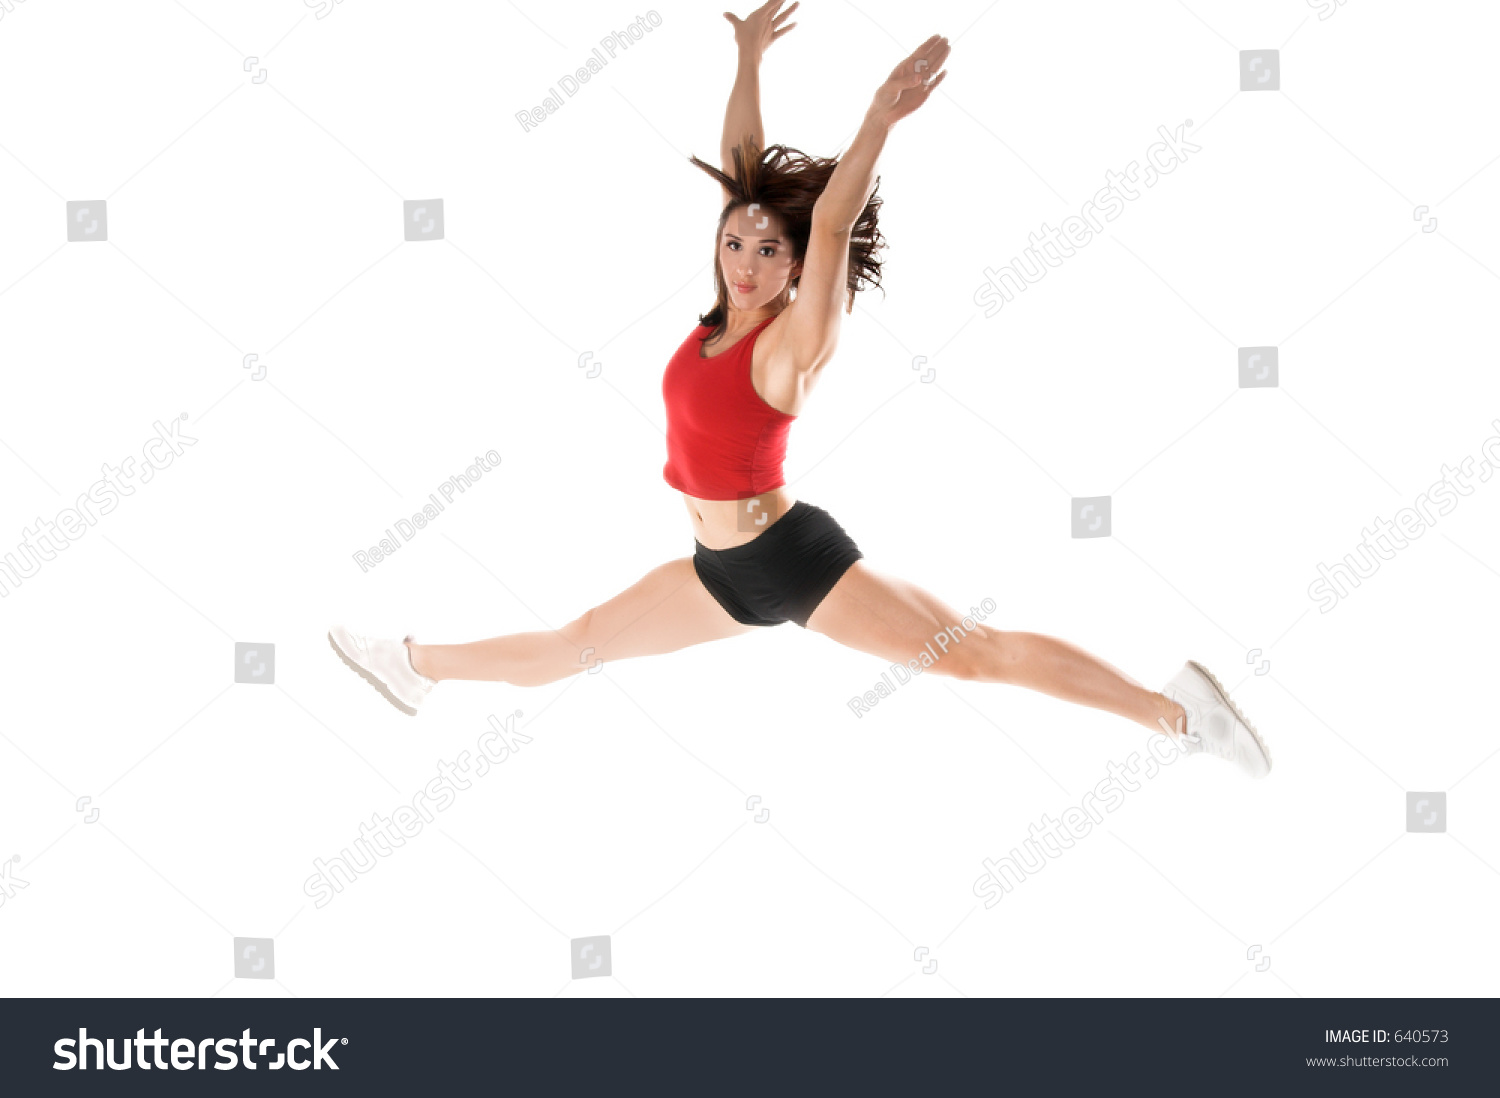 A Woman Does A Gymnastic Jump In The Gym Ez Canvas